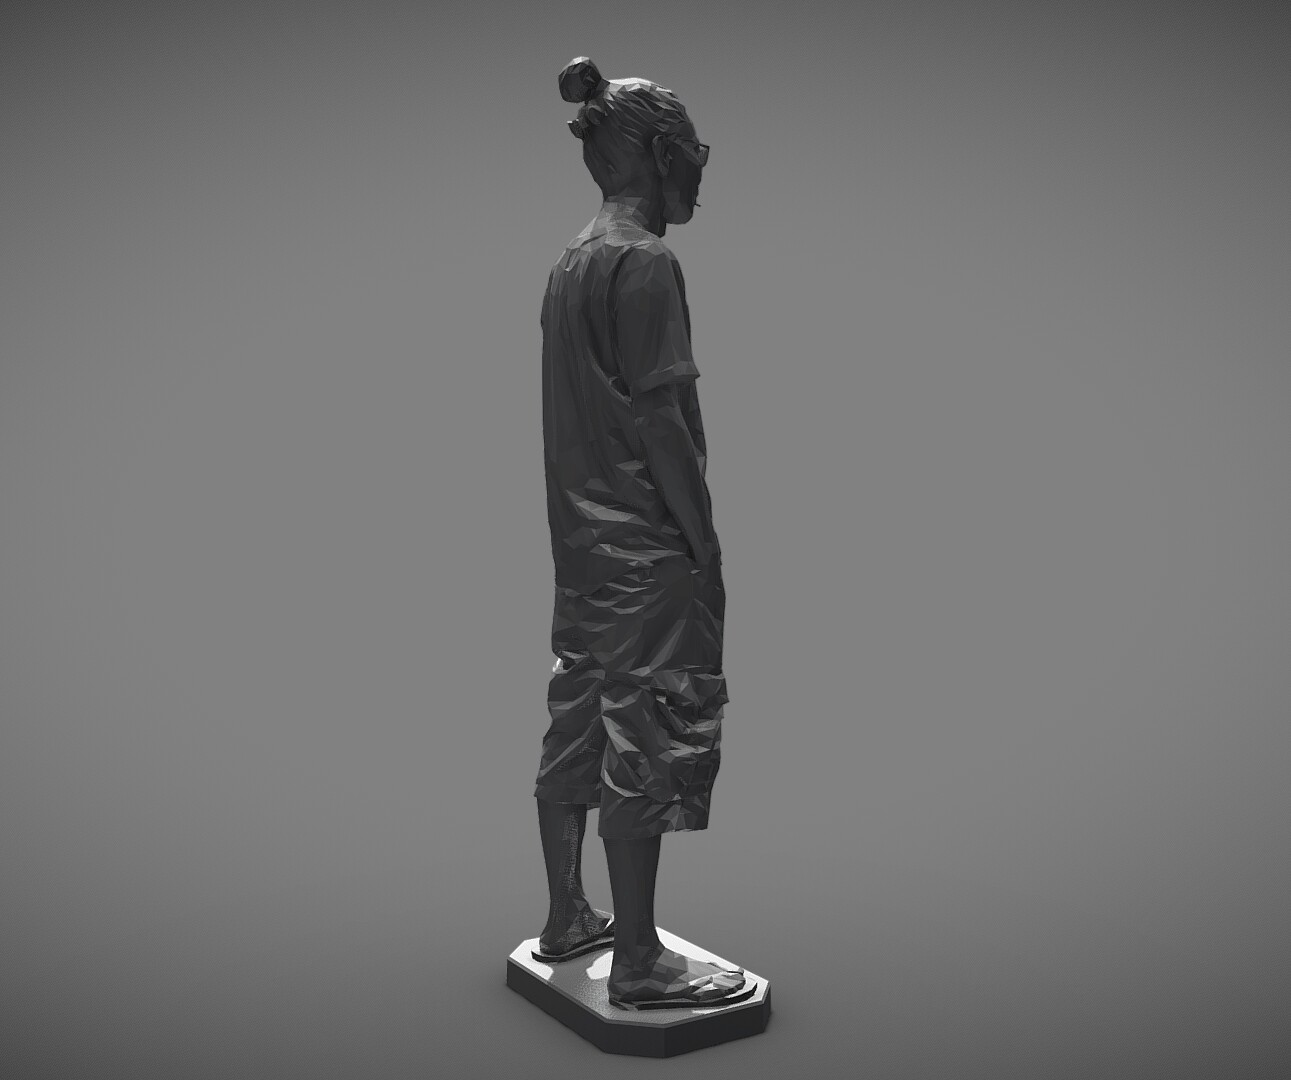 Michael wu mw 3d printing test low downlox free 3d model by mwopus mwopus sketchfab20190320 007952